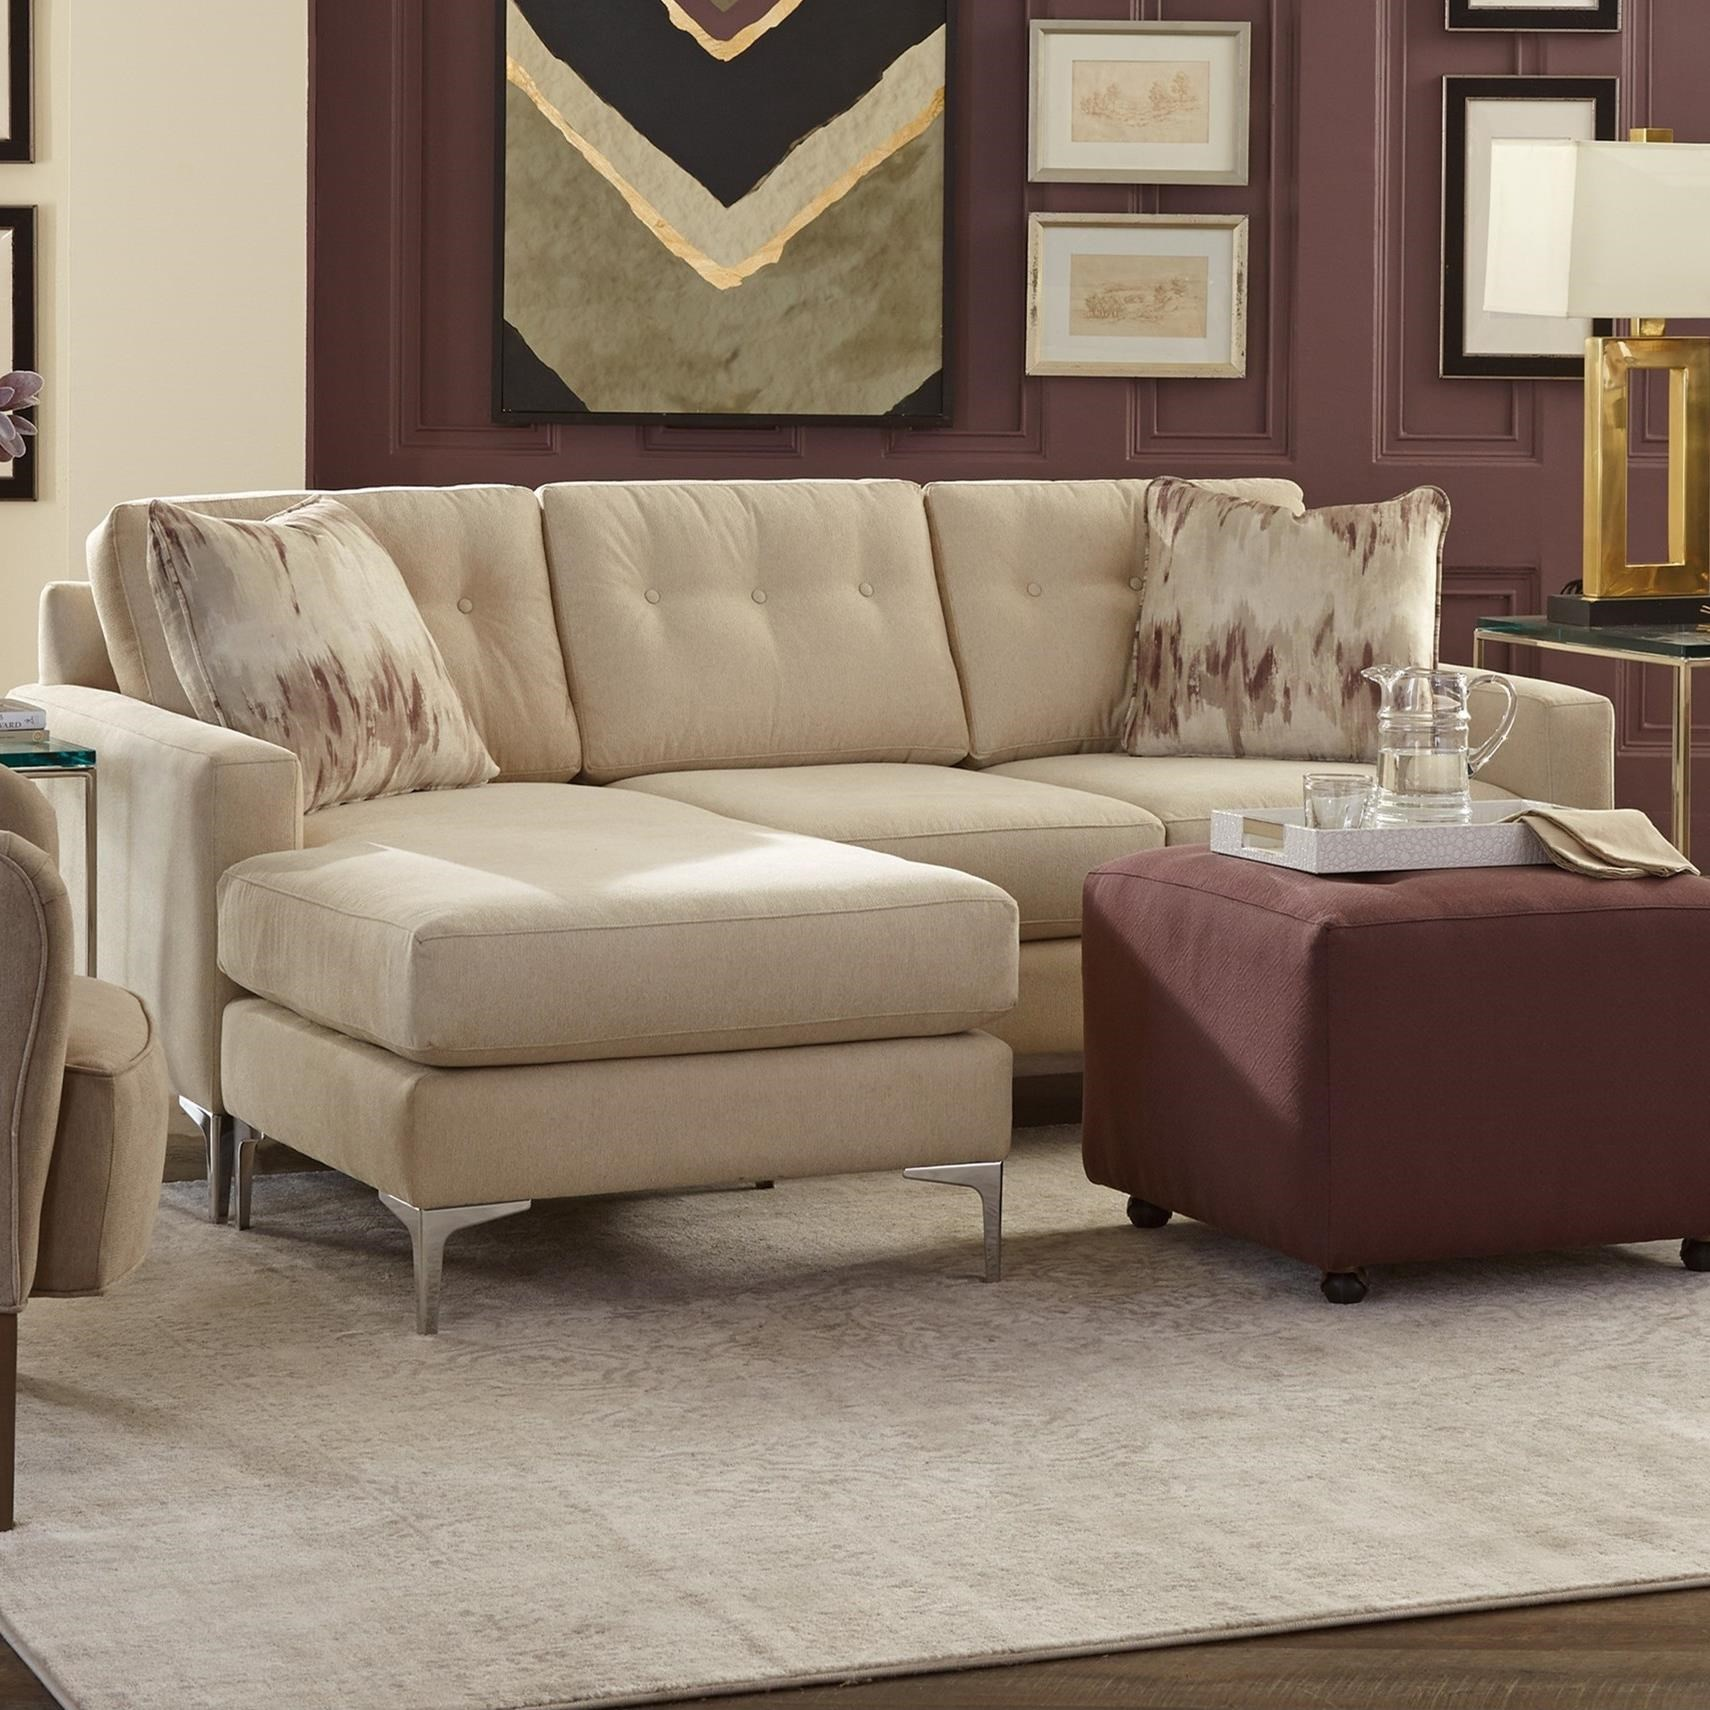 Modern Tufted Sofa With Chaise And Metal Legs